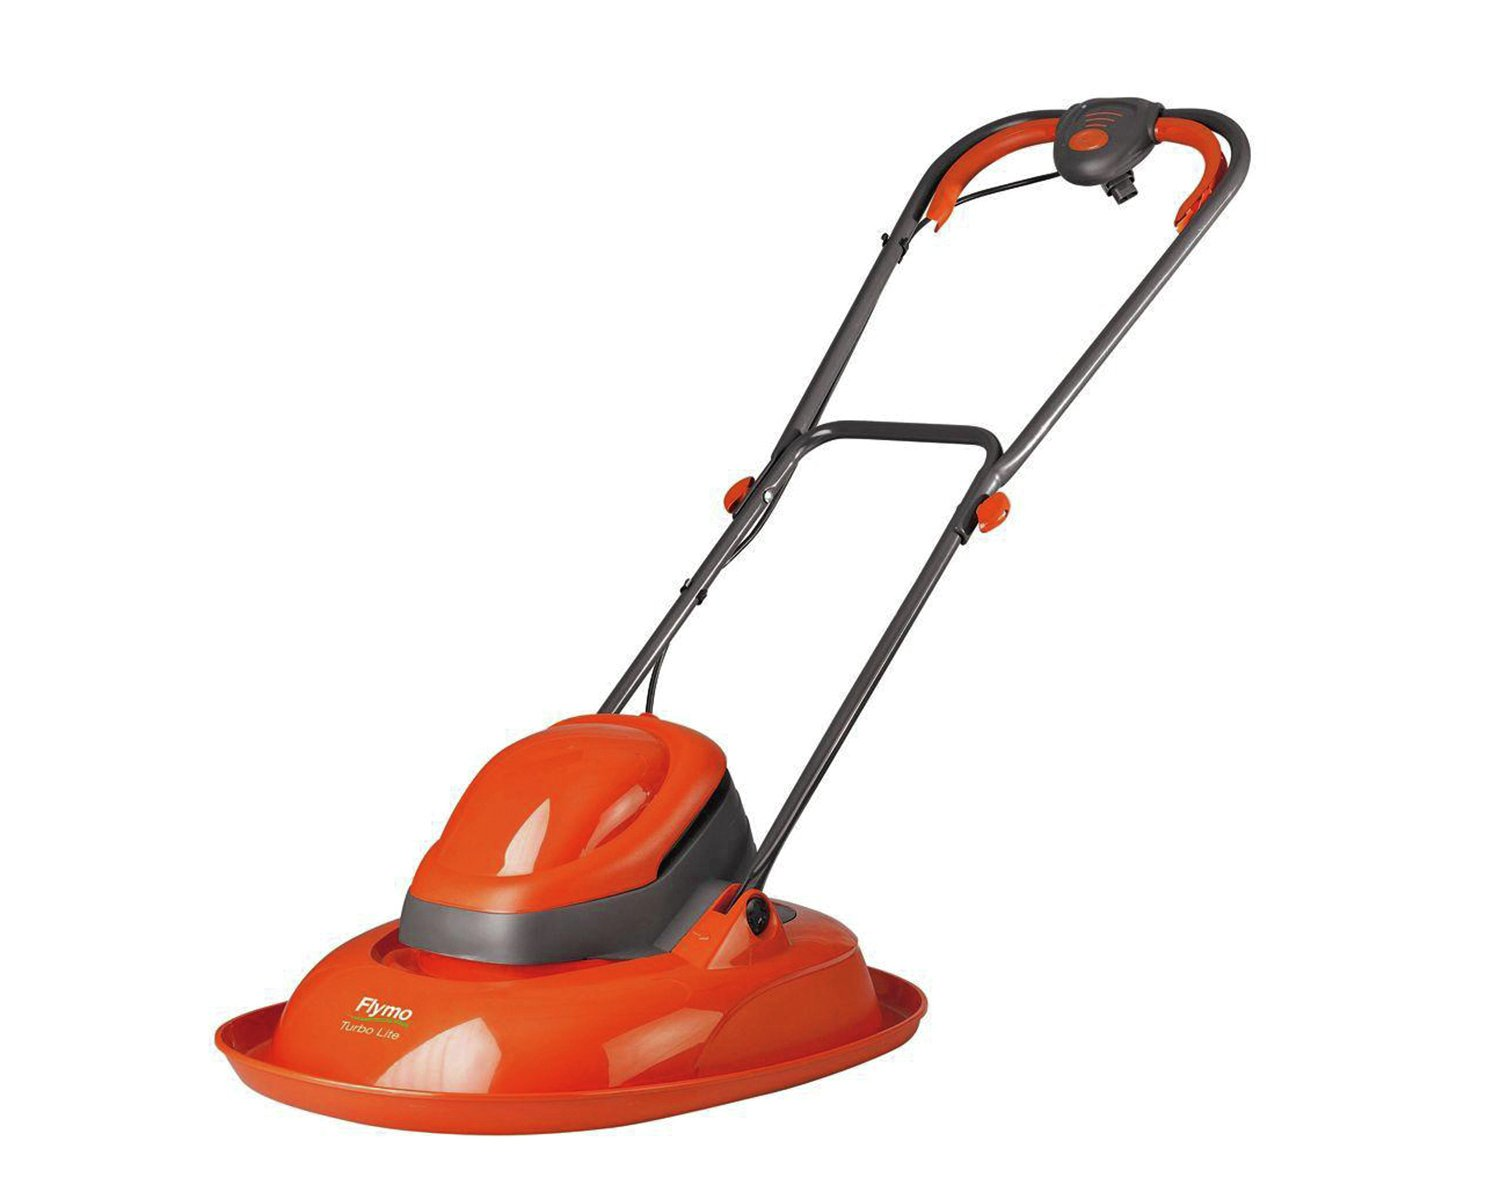 Flymo TurboLite330 33cm Corded Hover Lawnmower - 1150W